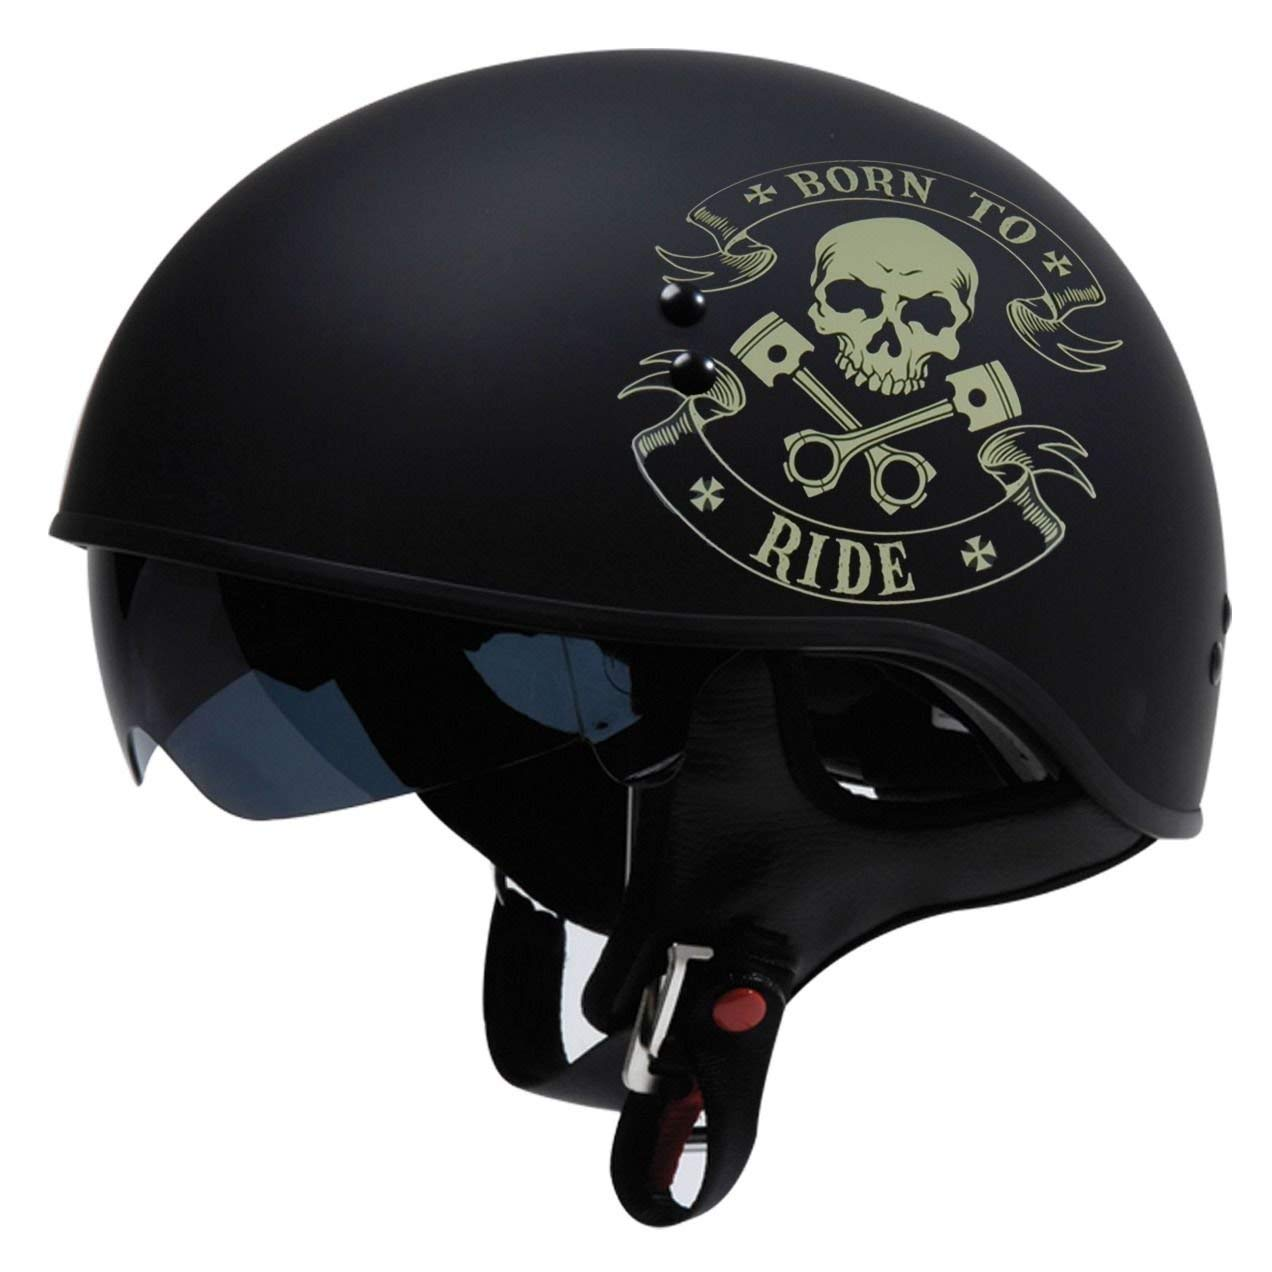 TORC T5515BTR23 Flat Black T55 Spec-Op Motorcycle Half Helmet with Graphic and Drop-Down Sun Visor (Born to Ride, Medium) by TORC